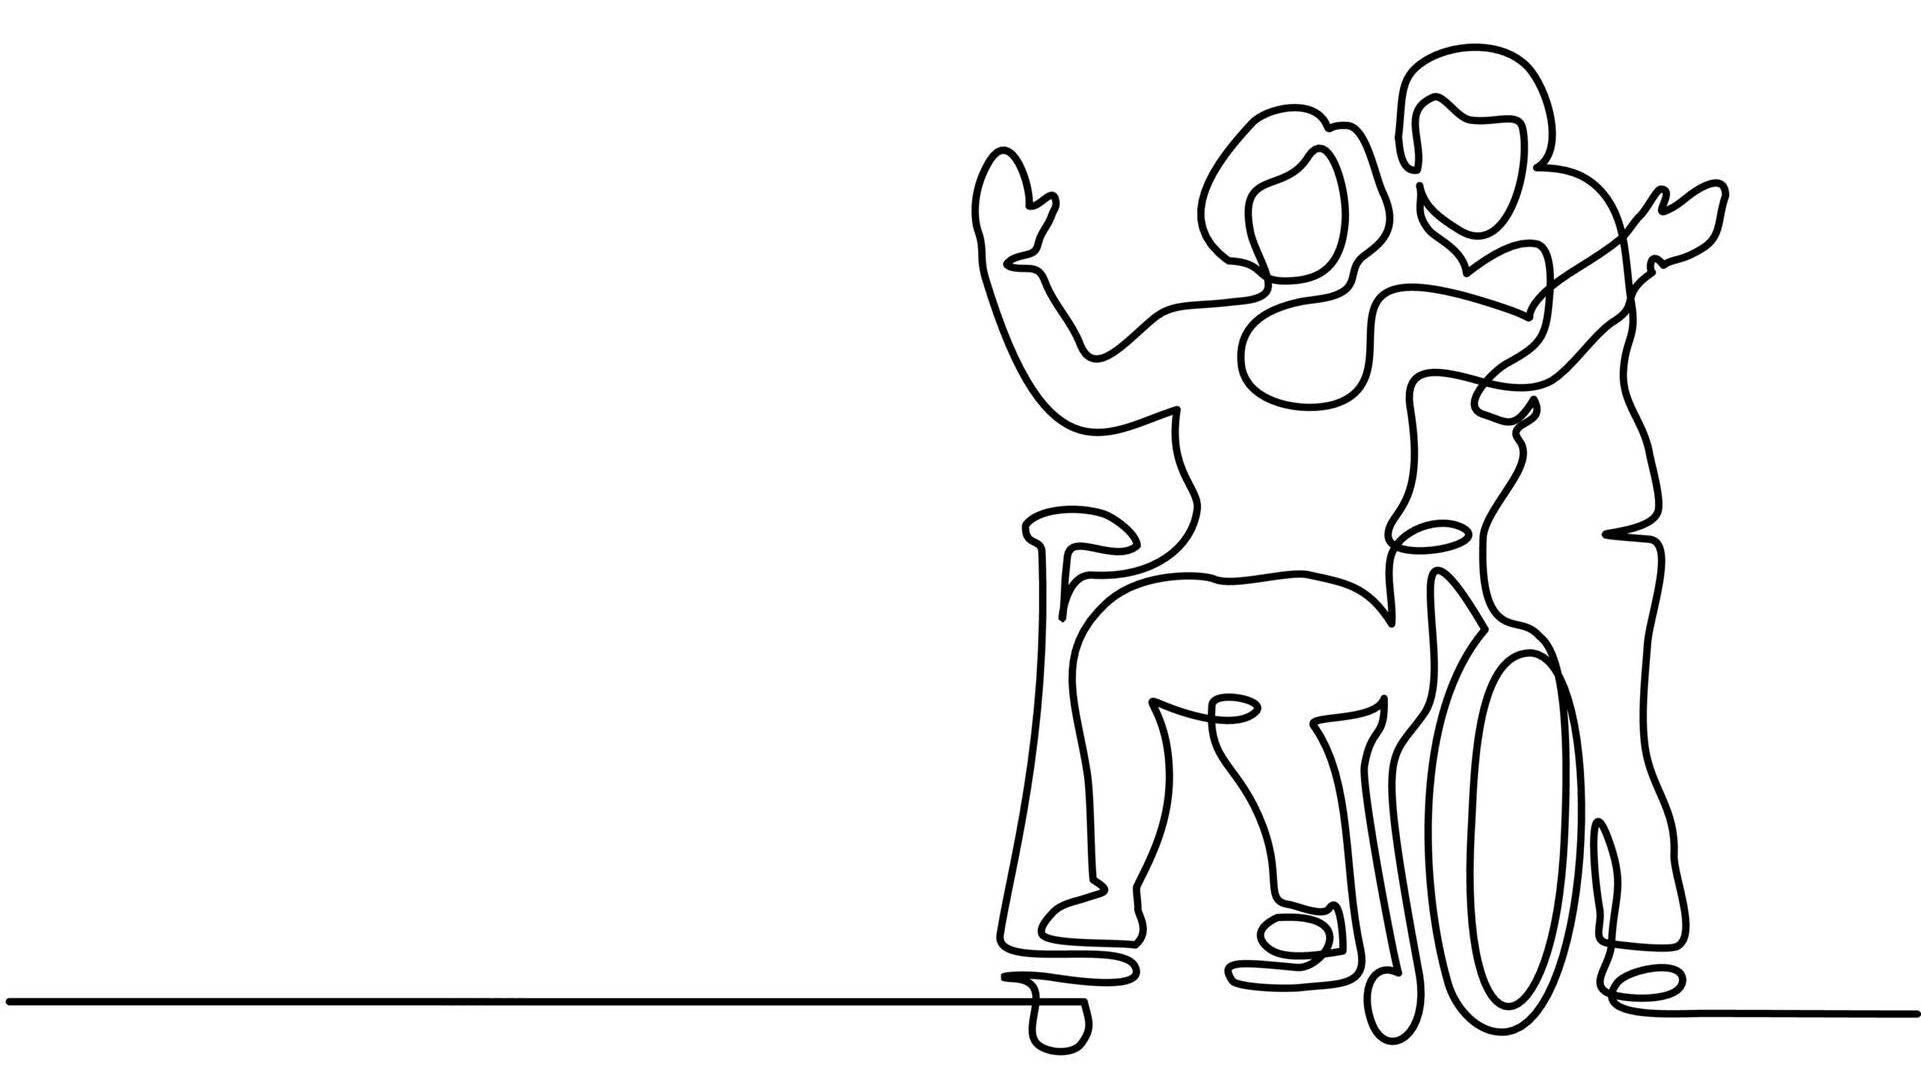 Illustration of man pushing woman in a wheelchair, disabled partner, ableist, relationship, rewire